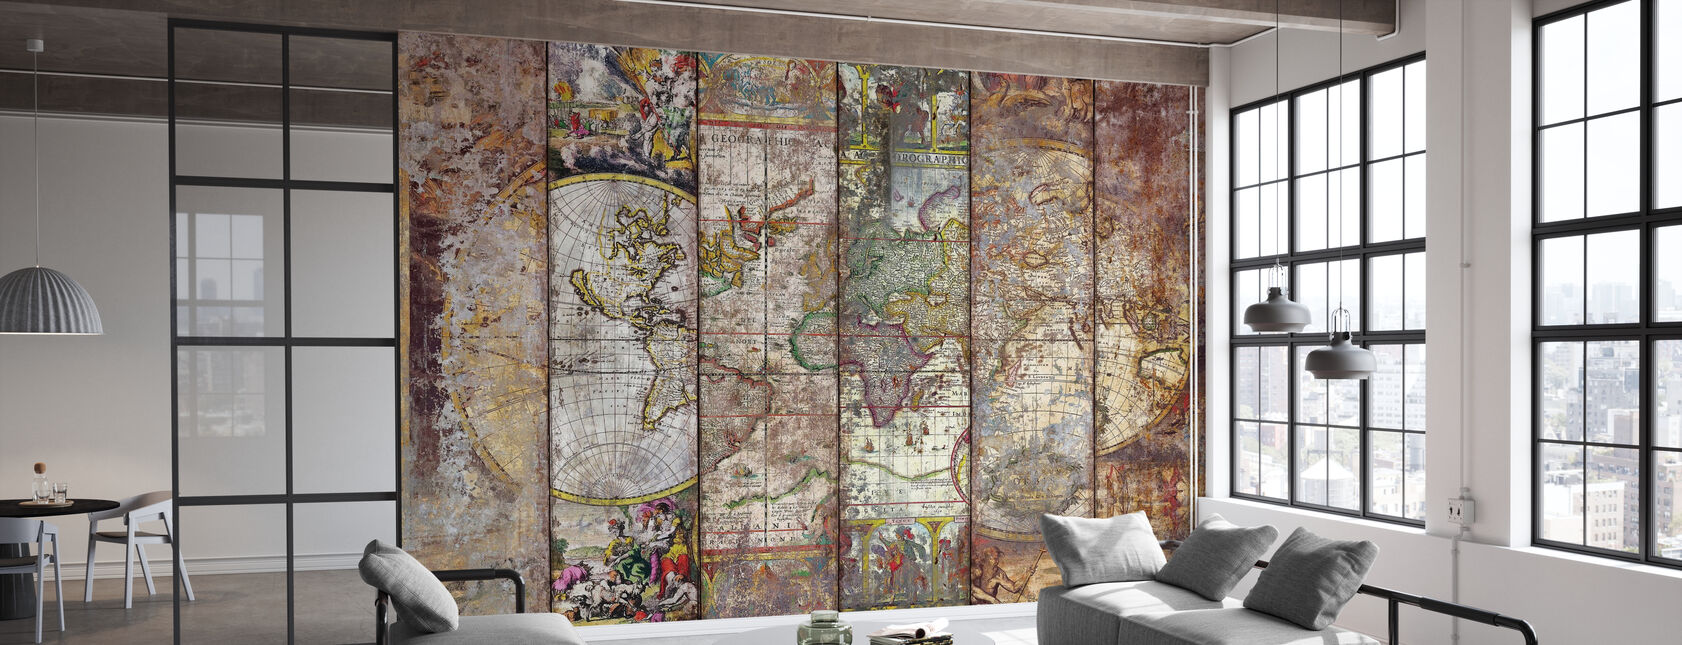 Old Times World Map - Wallpaper - Office